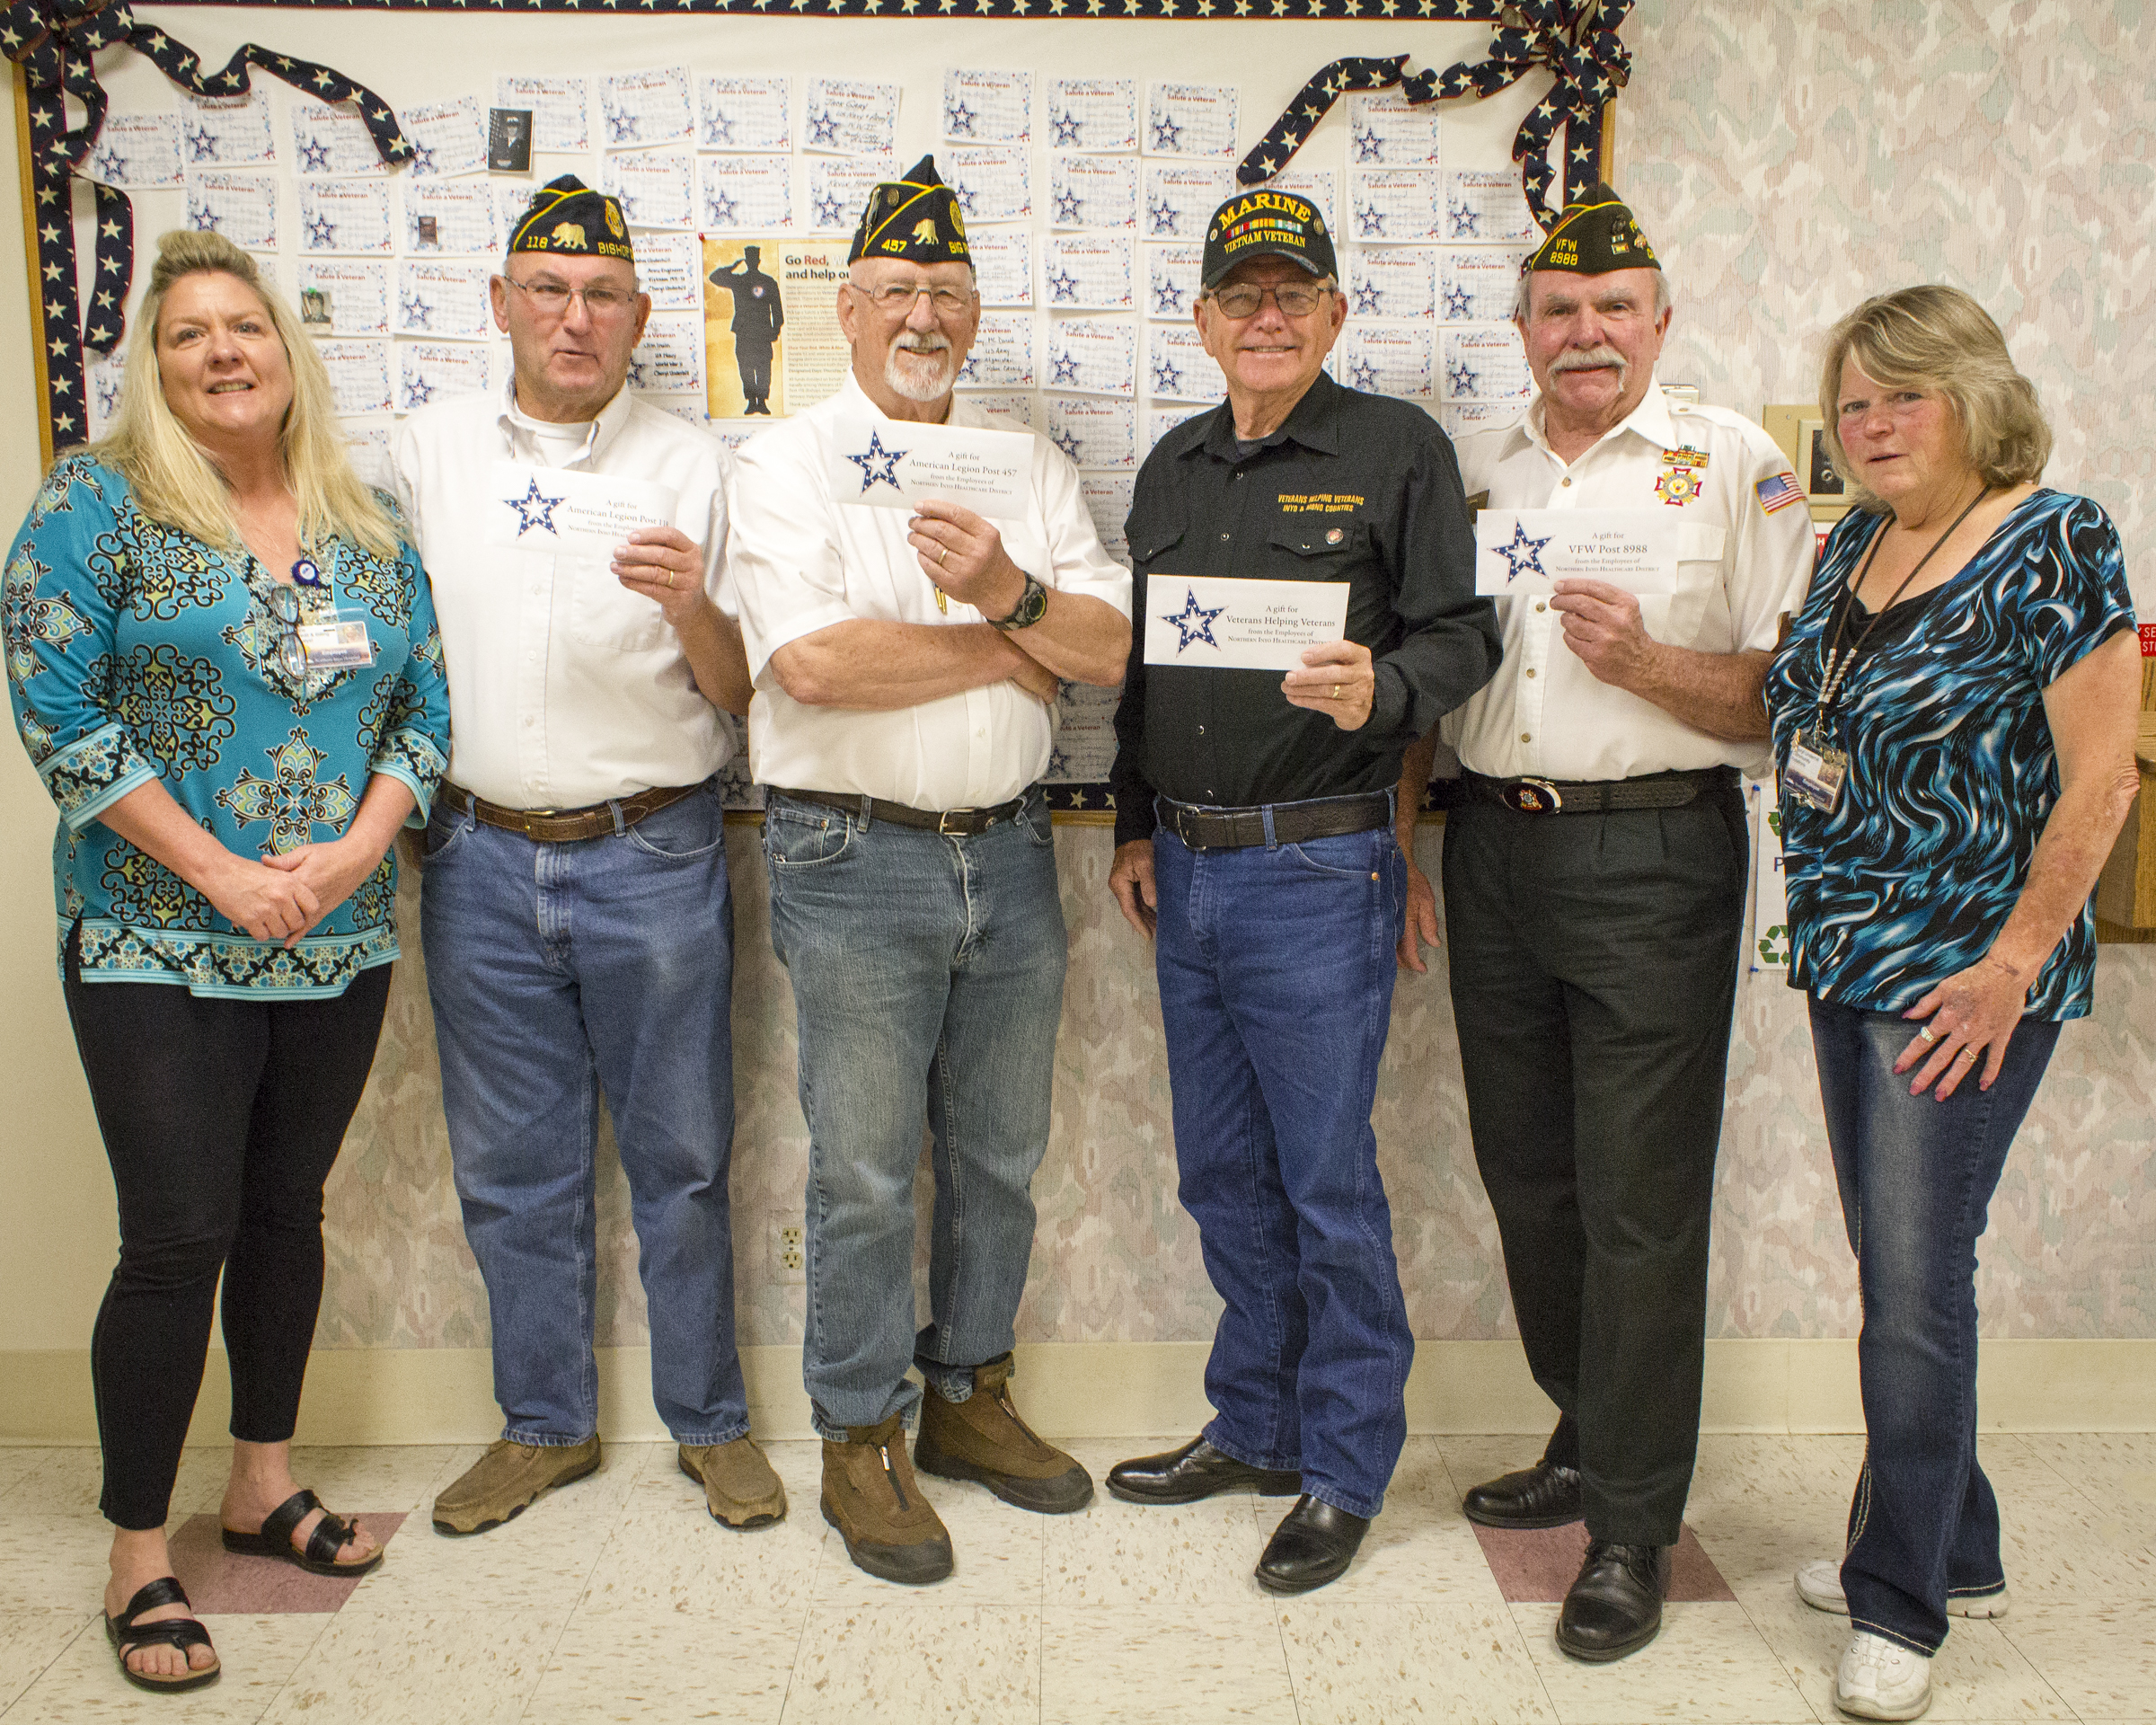 Northern Inyo Healthcare District employees recently raised $800 for four local veterans organizations. Shown here are Lorie Thompson, NIHD's Veterans Administration Liaison; Paul Sanders, Commander of American Legion Post 118, Bishop; Rick Fields, Commander of American Legion Post 457, Big Pine; Dan Stone, Veterans Helping Veterans; Jim Snyder, Commander, Veterans of Foreign Wars Post 8988; and, Cheryl Underhill, NIHD Community Relations. Photo by Barbara Laughon/Northern Inyo Healthcare District